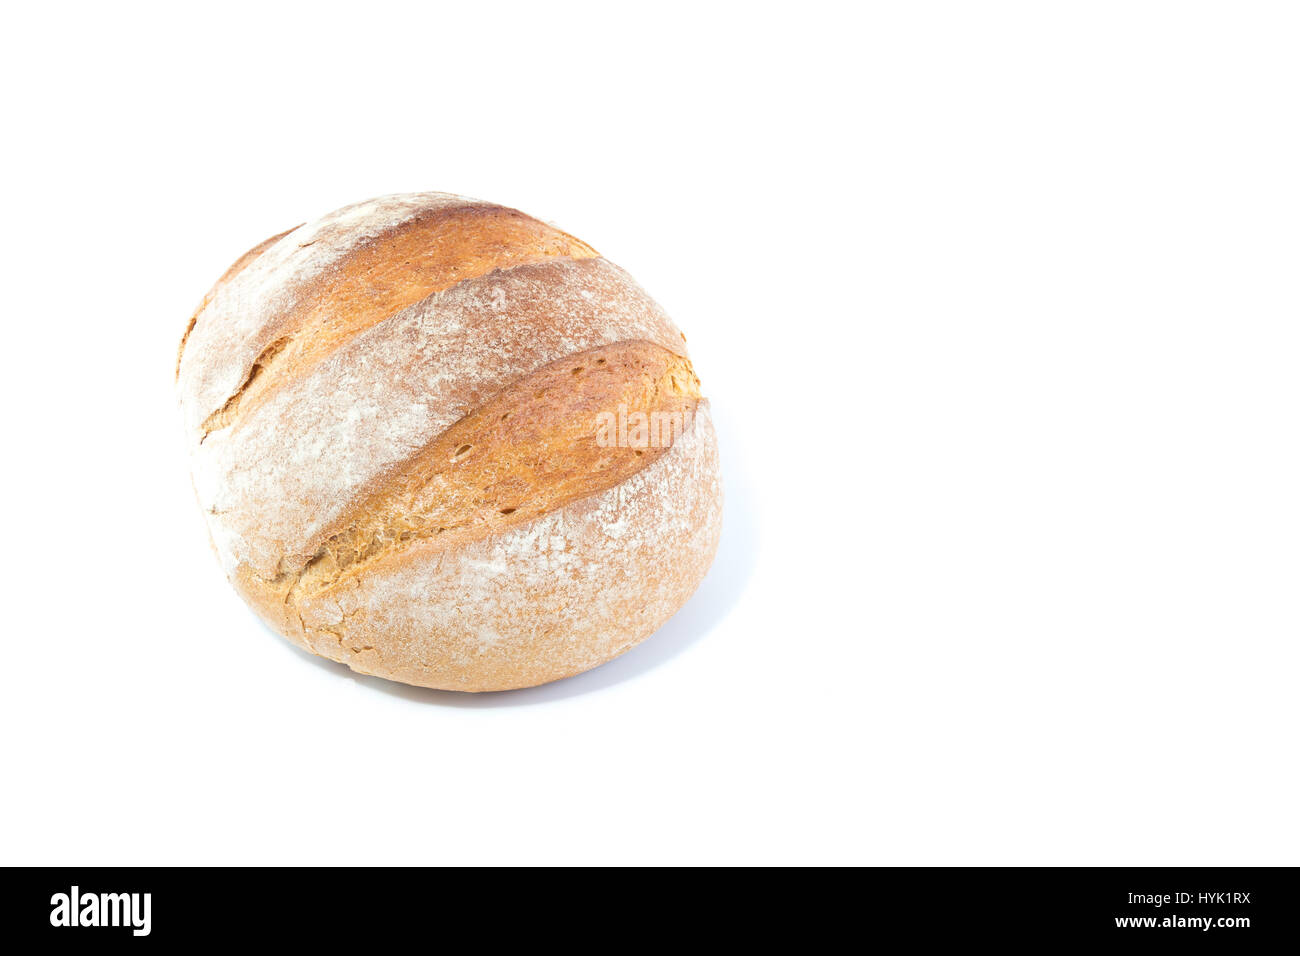 Full Rustic Medieval Loaf Of Bread Homemade Baked Isolated On White Background